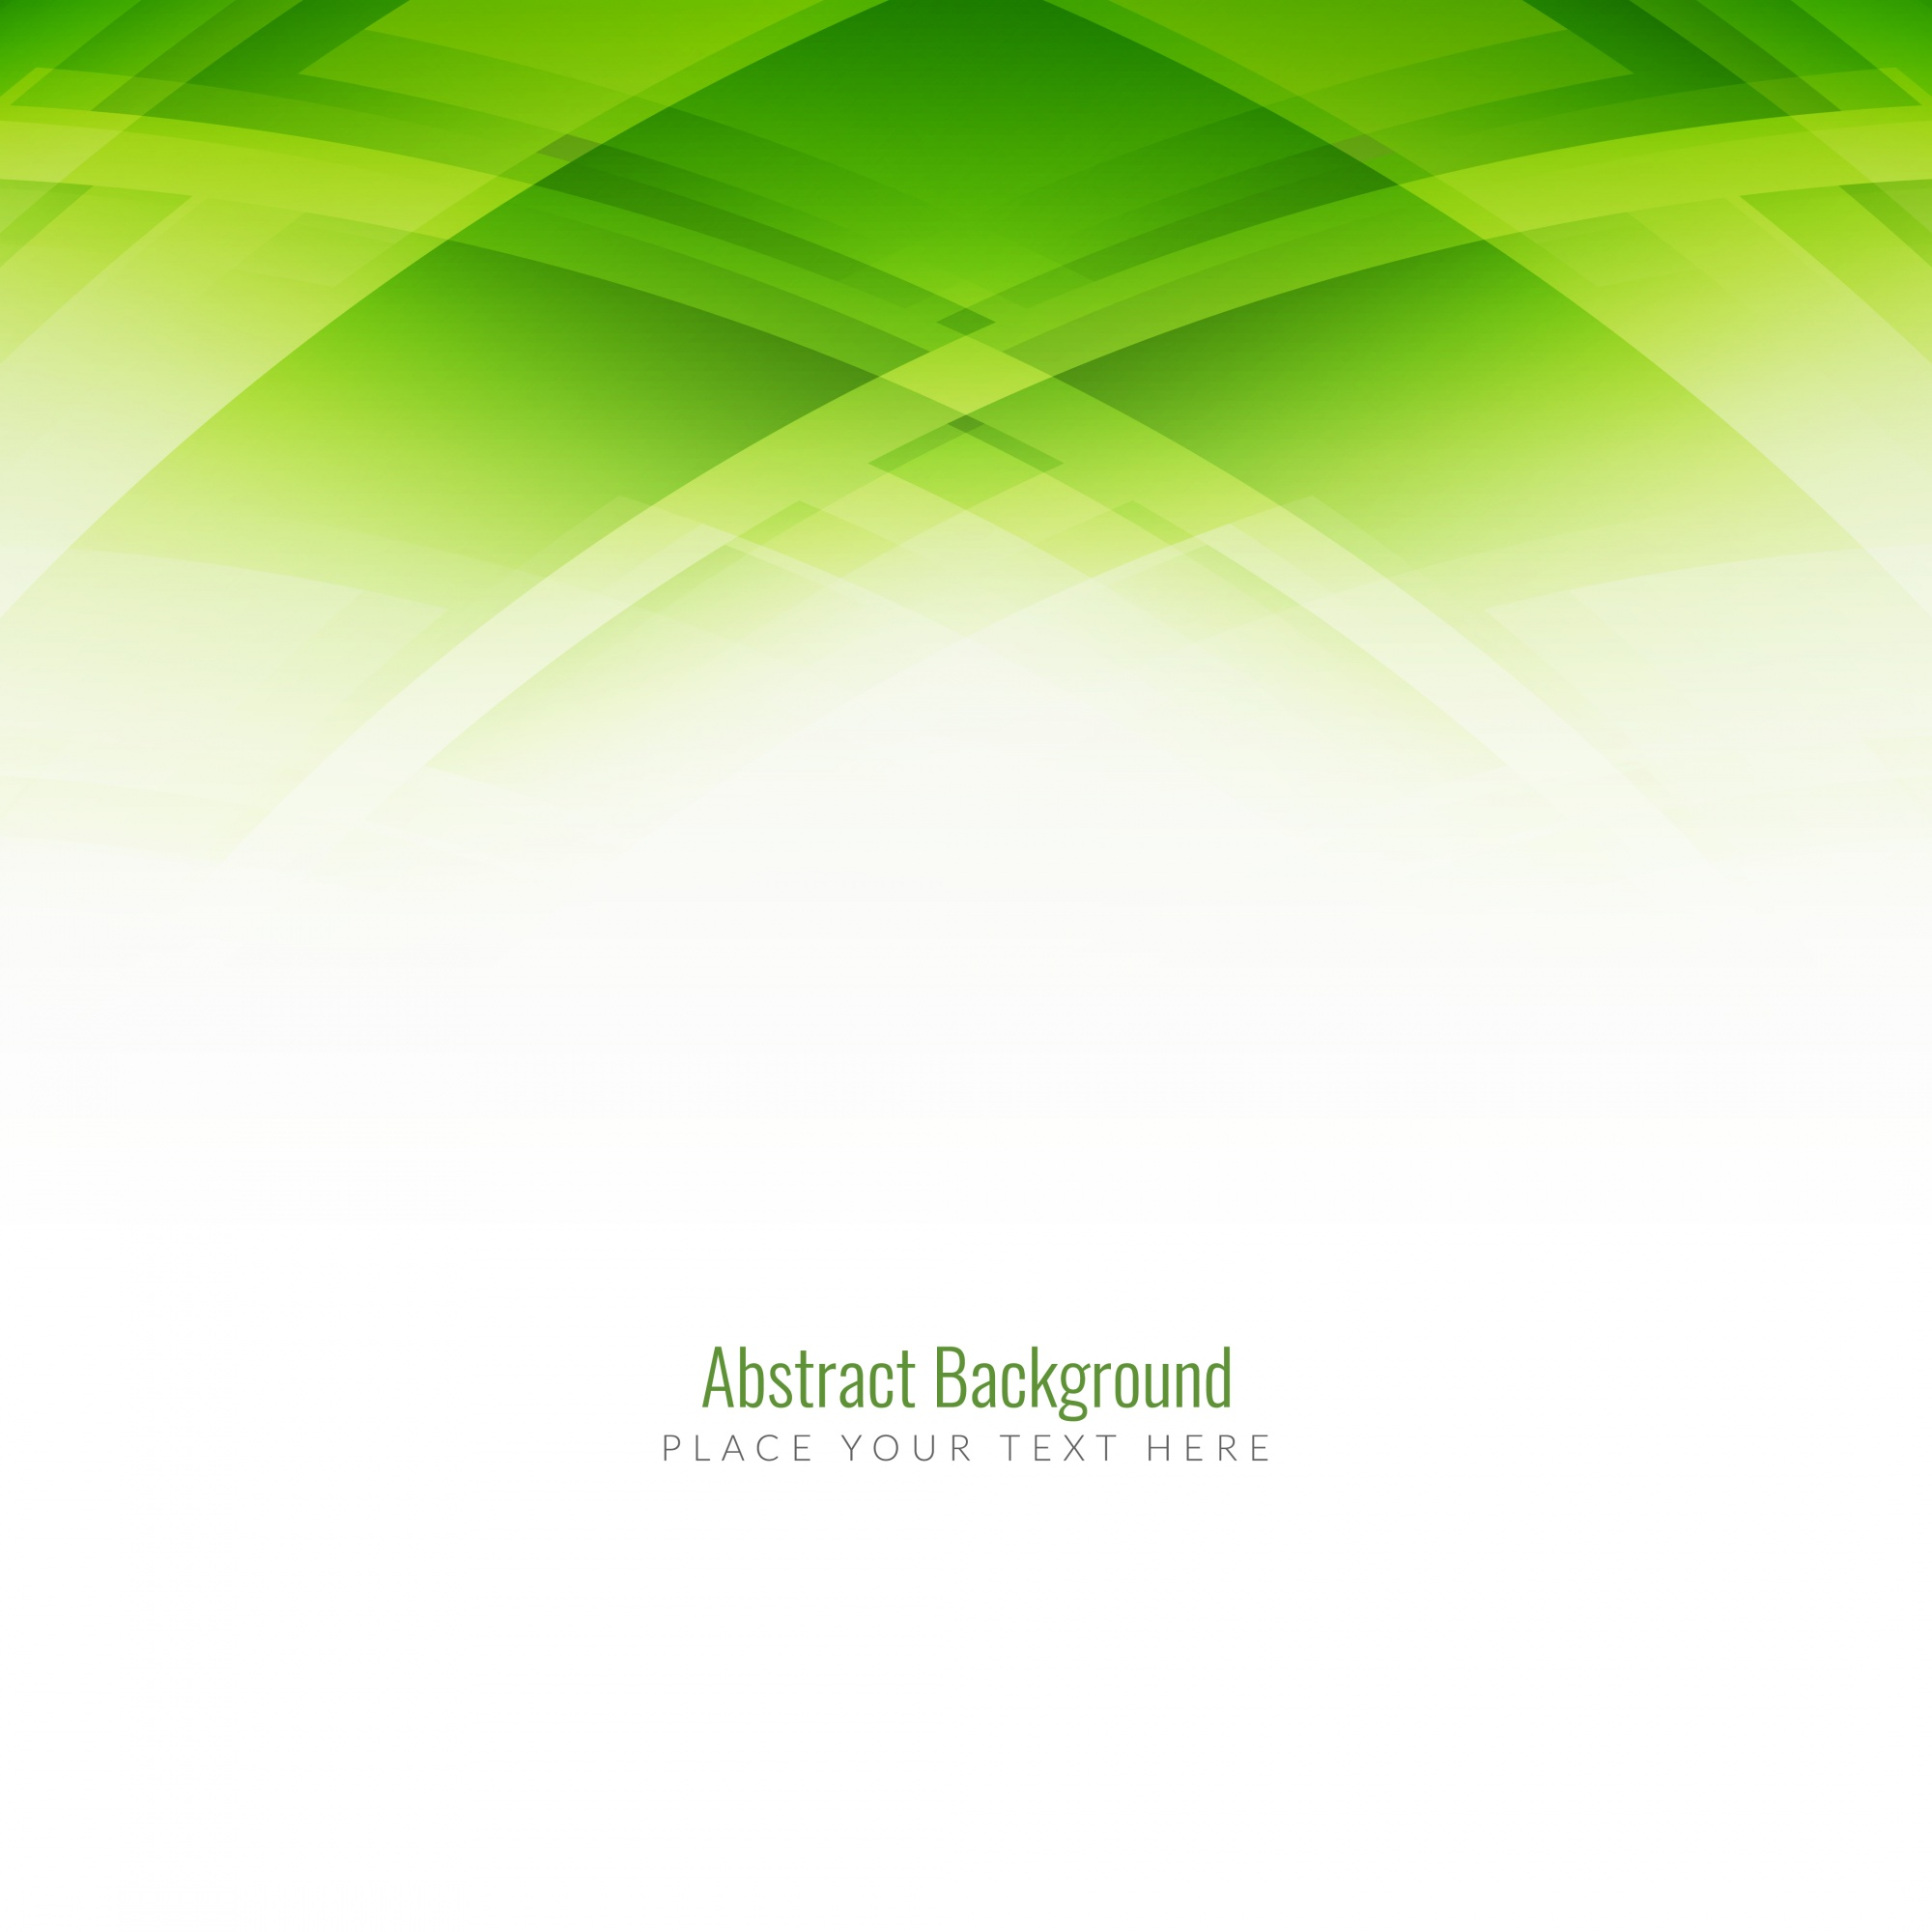 Abstract background, green tones